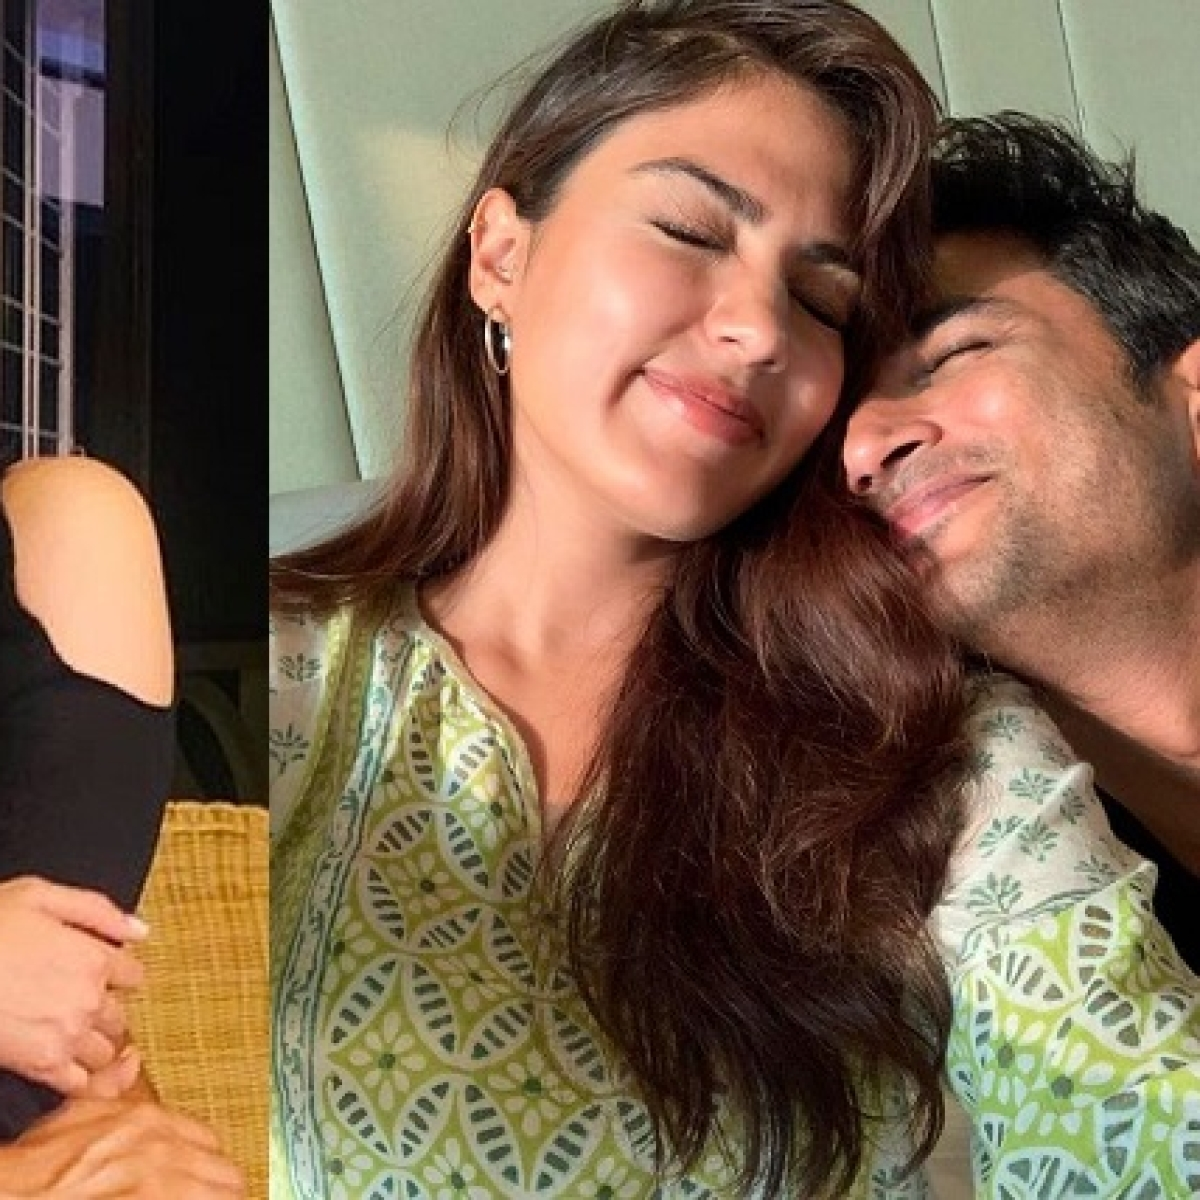 Who is Siddharth Pithani? Sushant's 'friend' who was 'pressurised' to 'raise questions' about Rhea Chakraborty